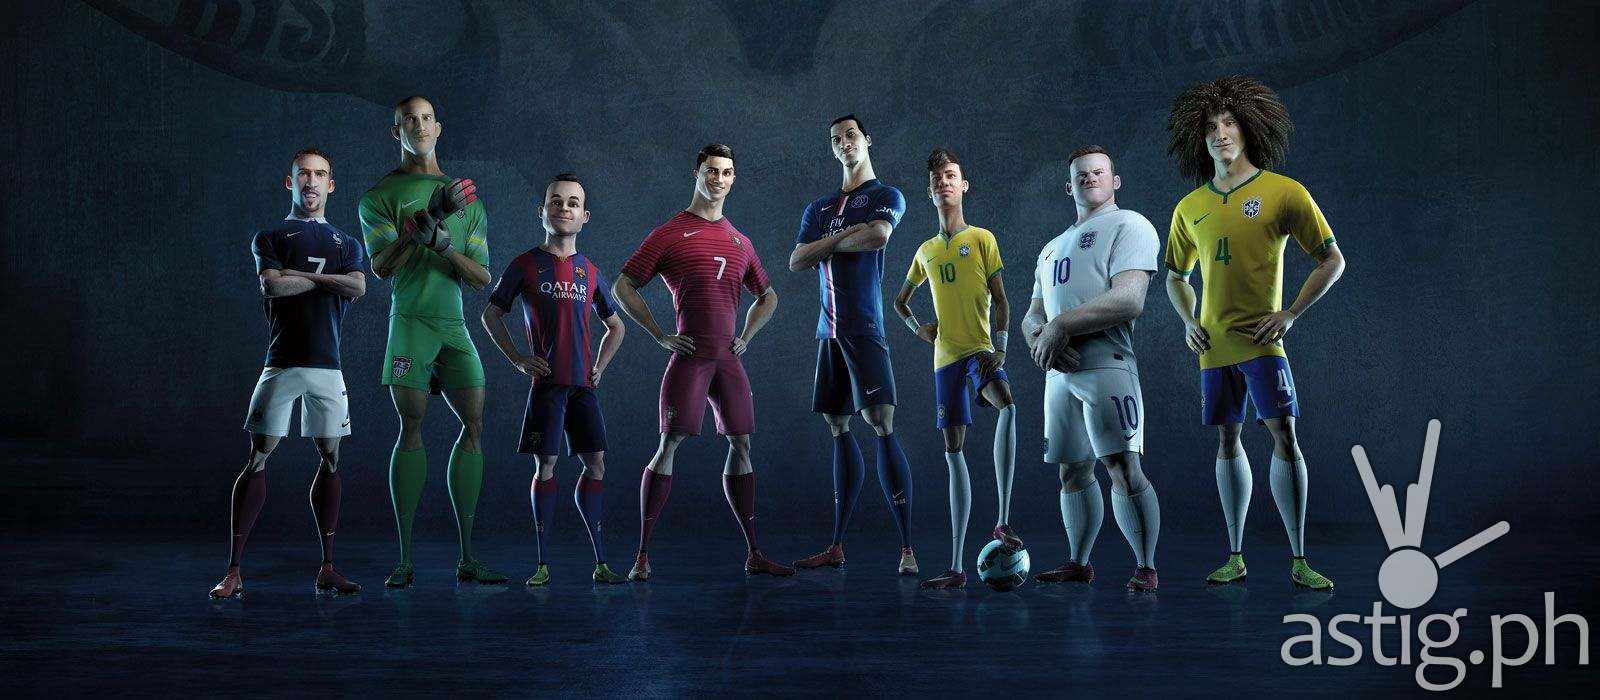 Nike Football riskeverything animation The Last Game